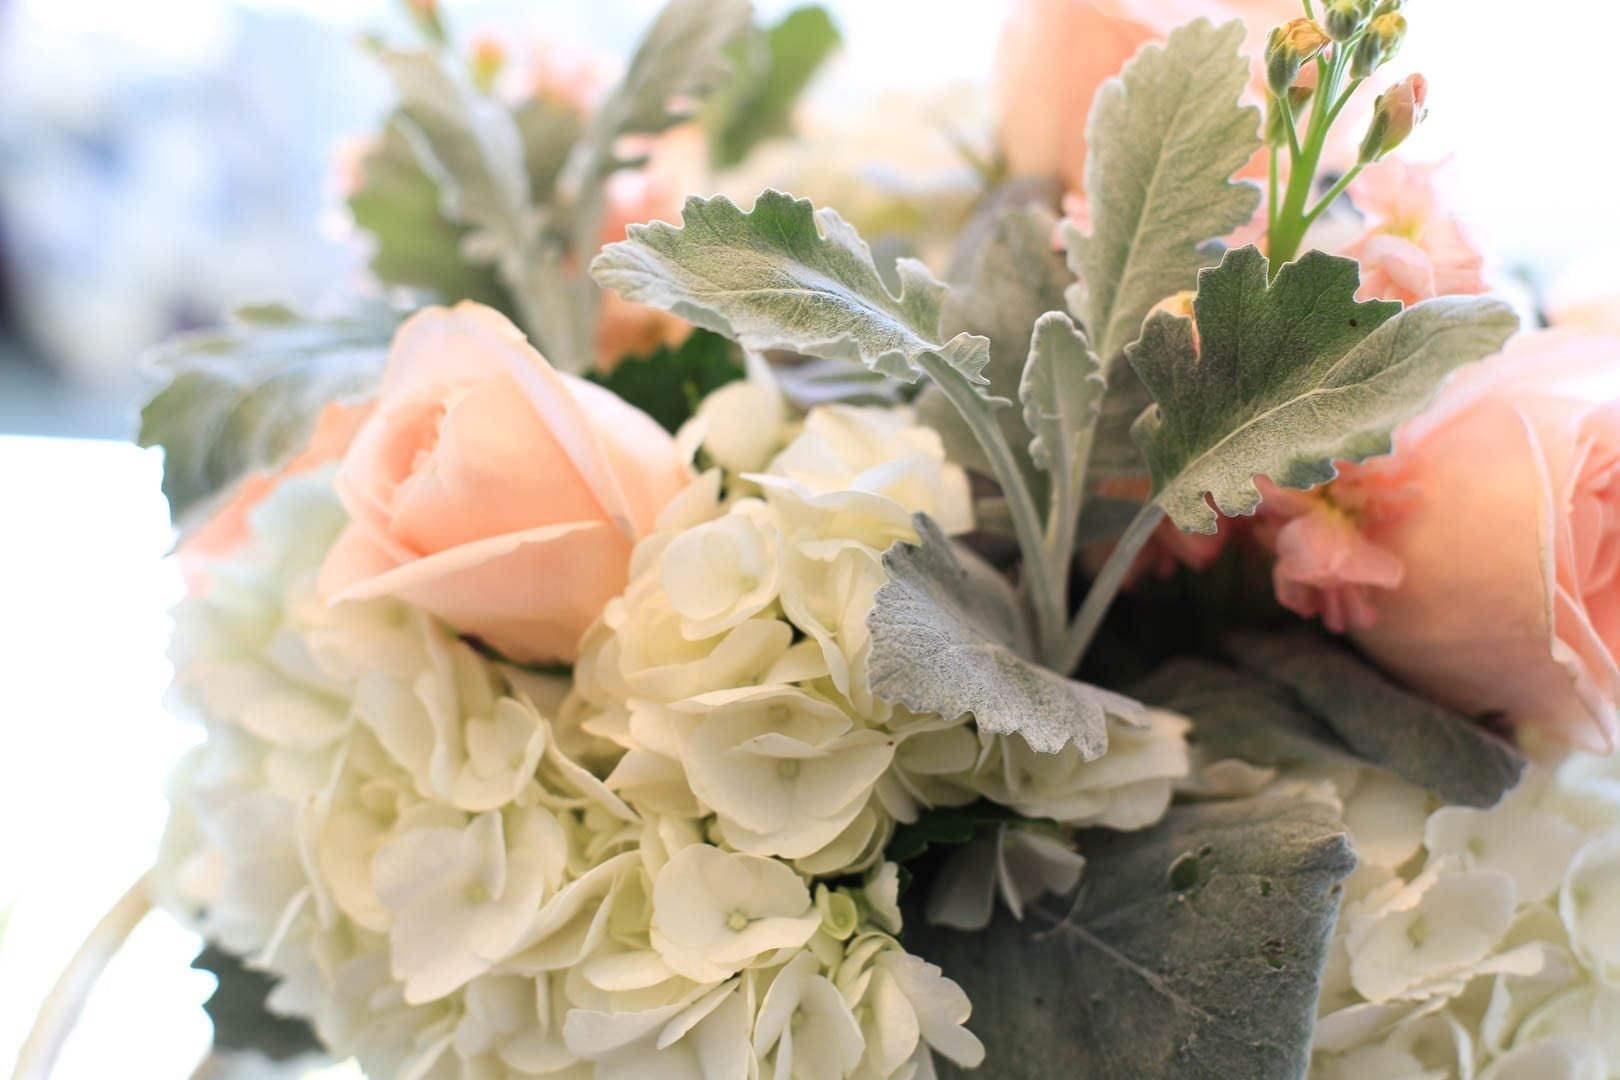 Peach Roses mixed with white hydrangea and dusty miller. Soft floral bouquet.